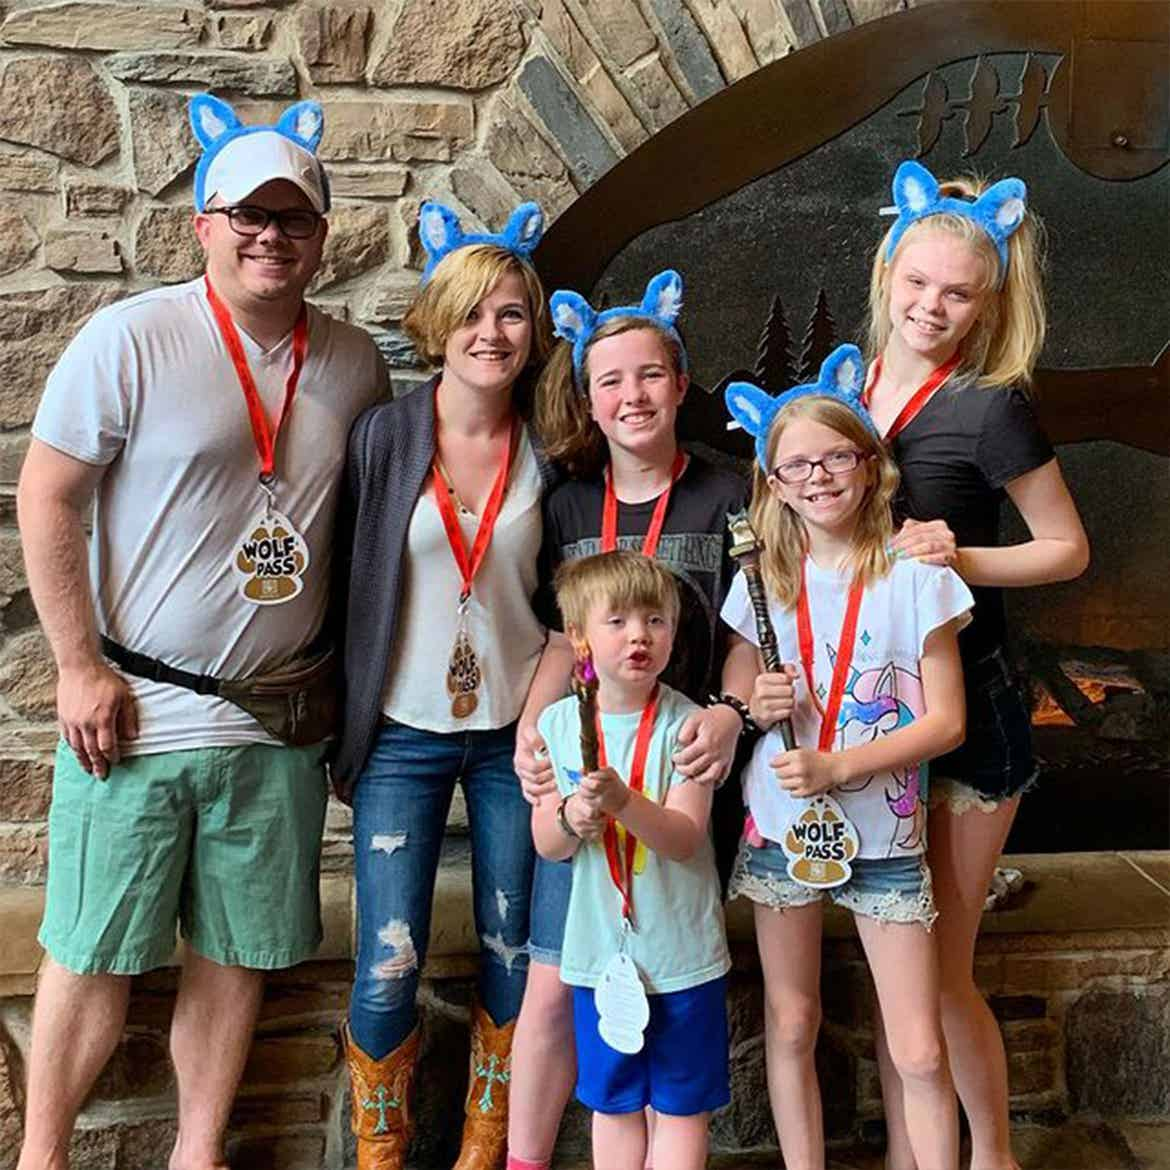 Featured Contributor, Alicia Trautwein and her husband, Andy, and their children, Hannah, Izzy, Lilly and Walker